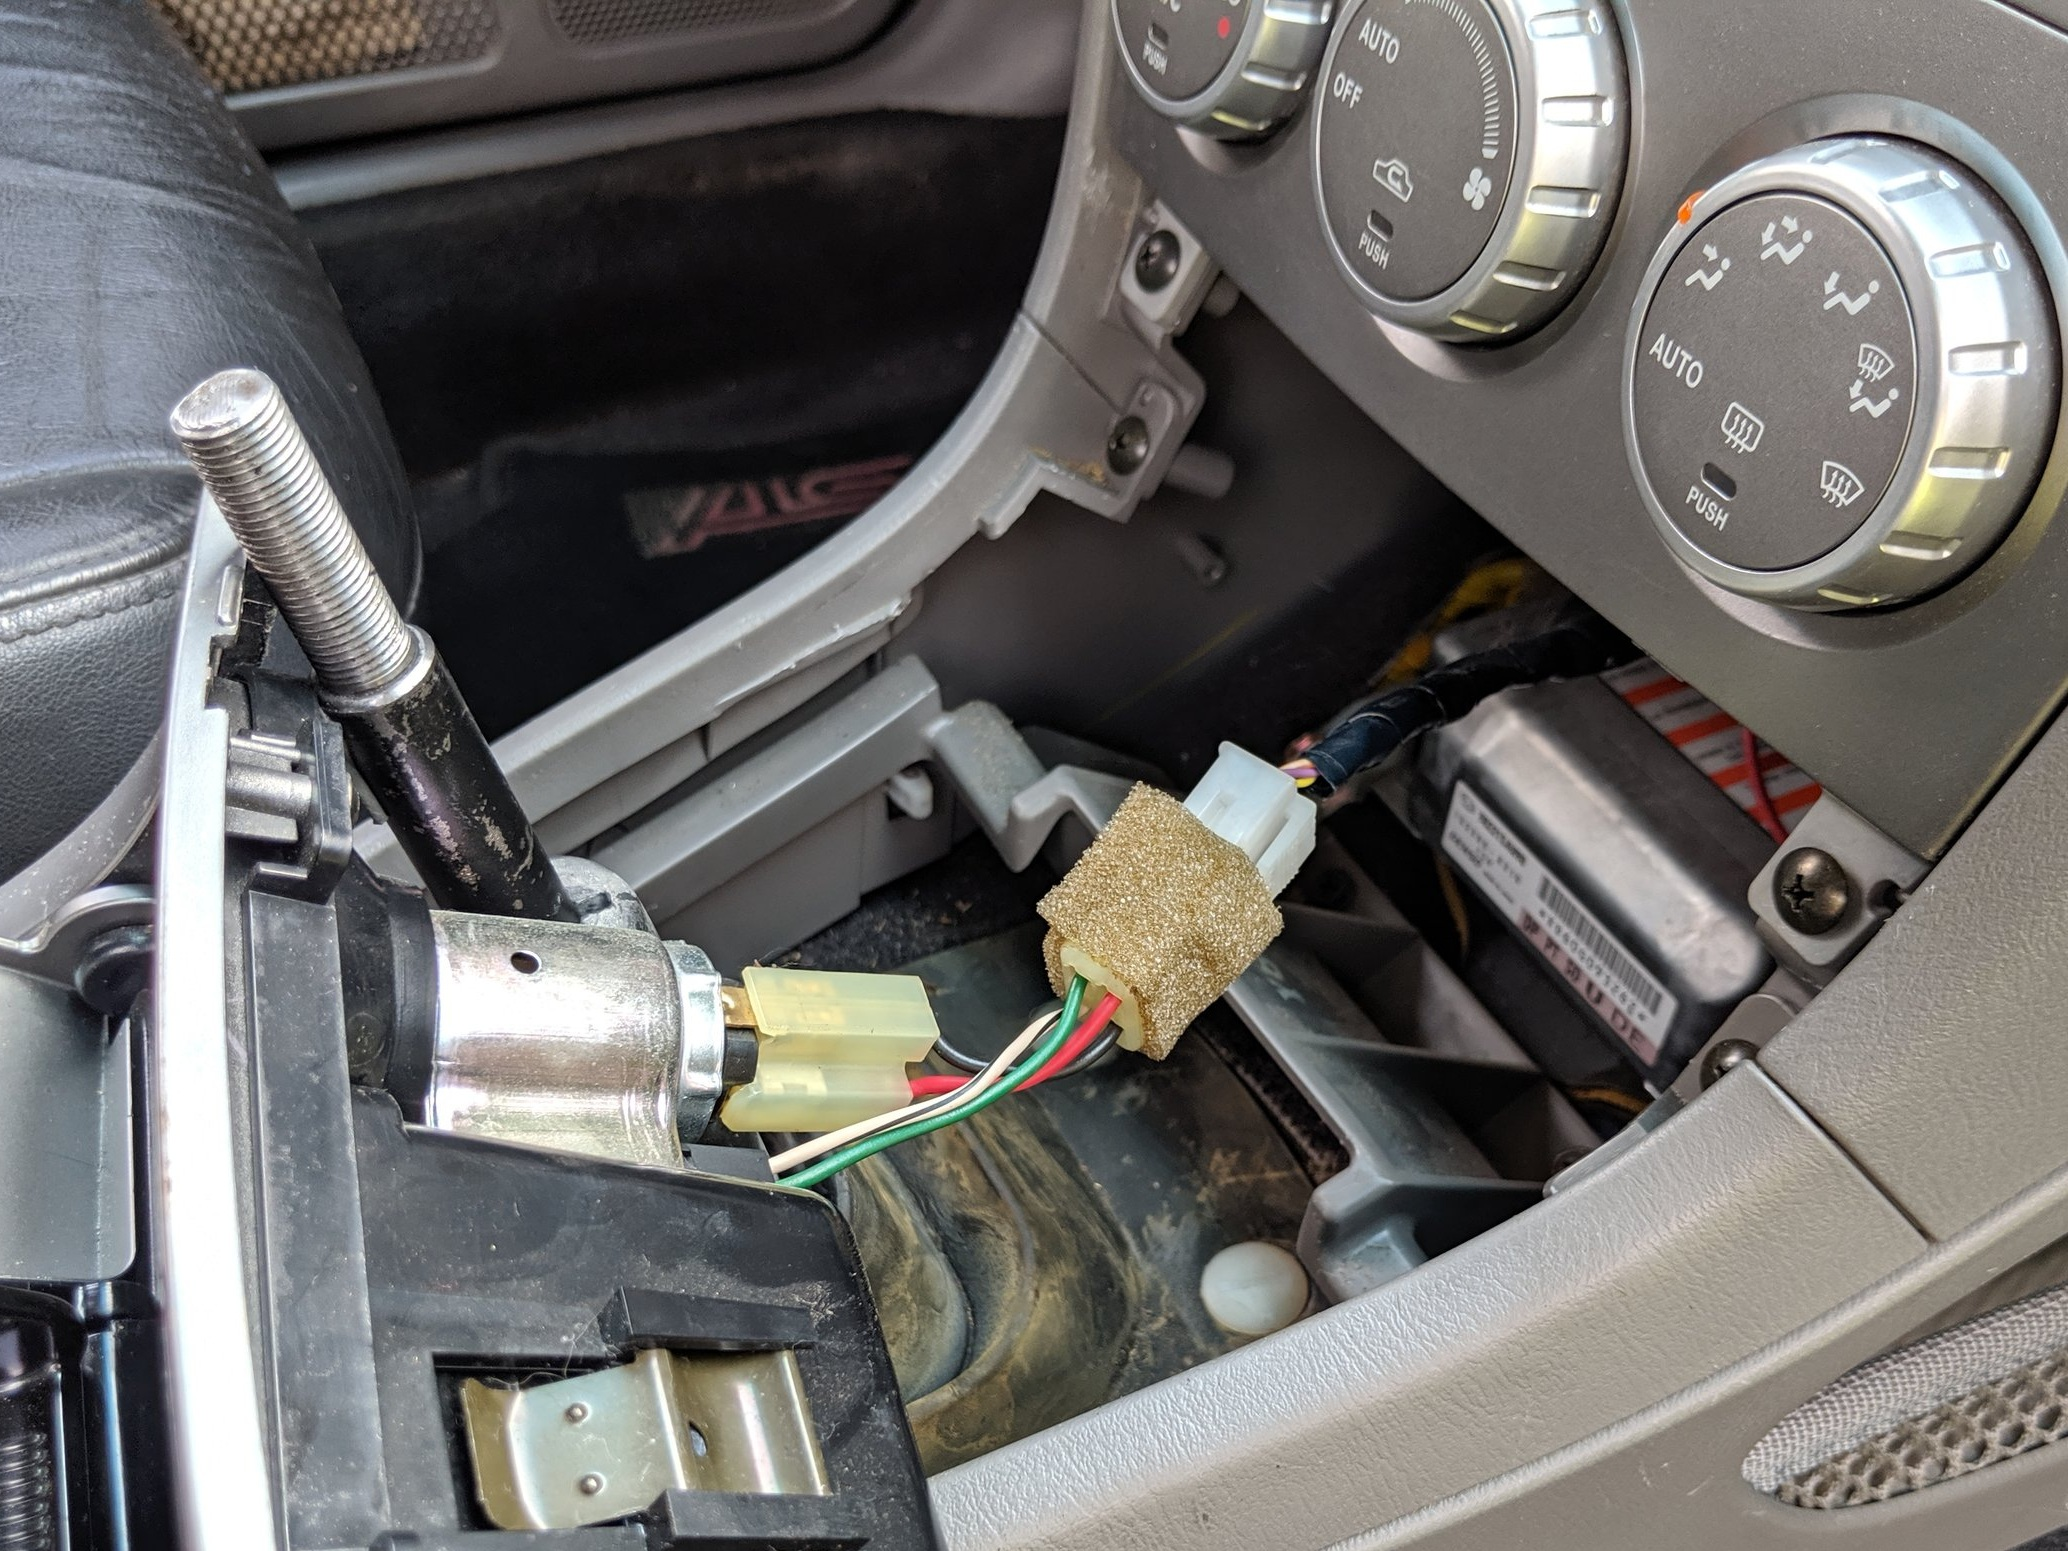 Back in with the cigarette connection. And on then return the shifter trim back on.